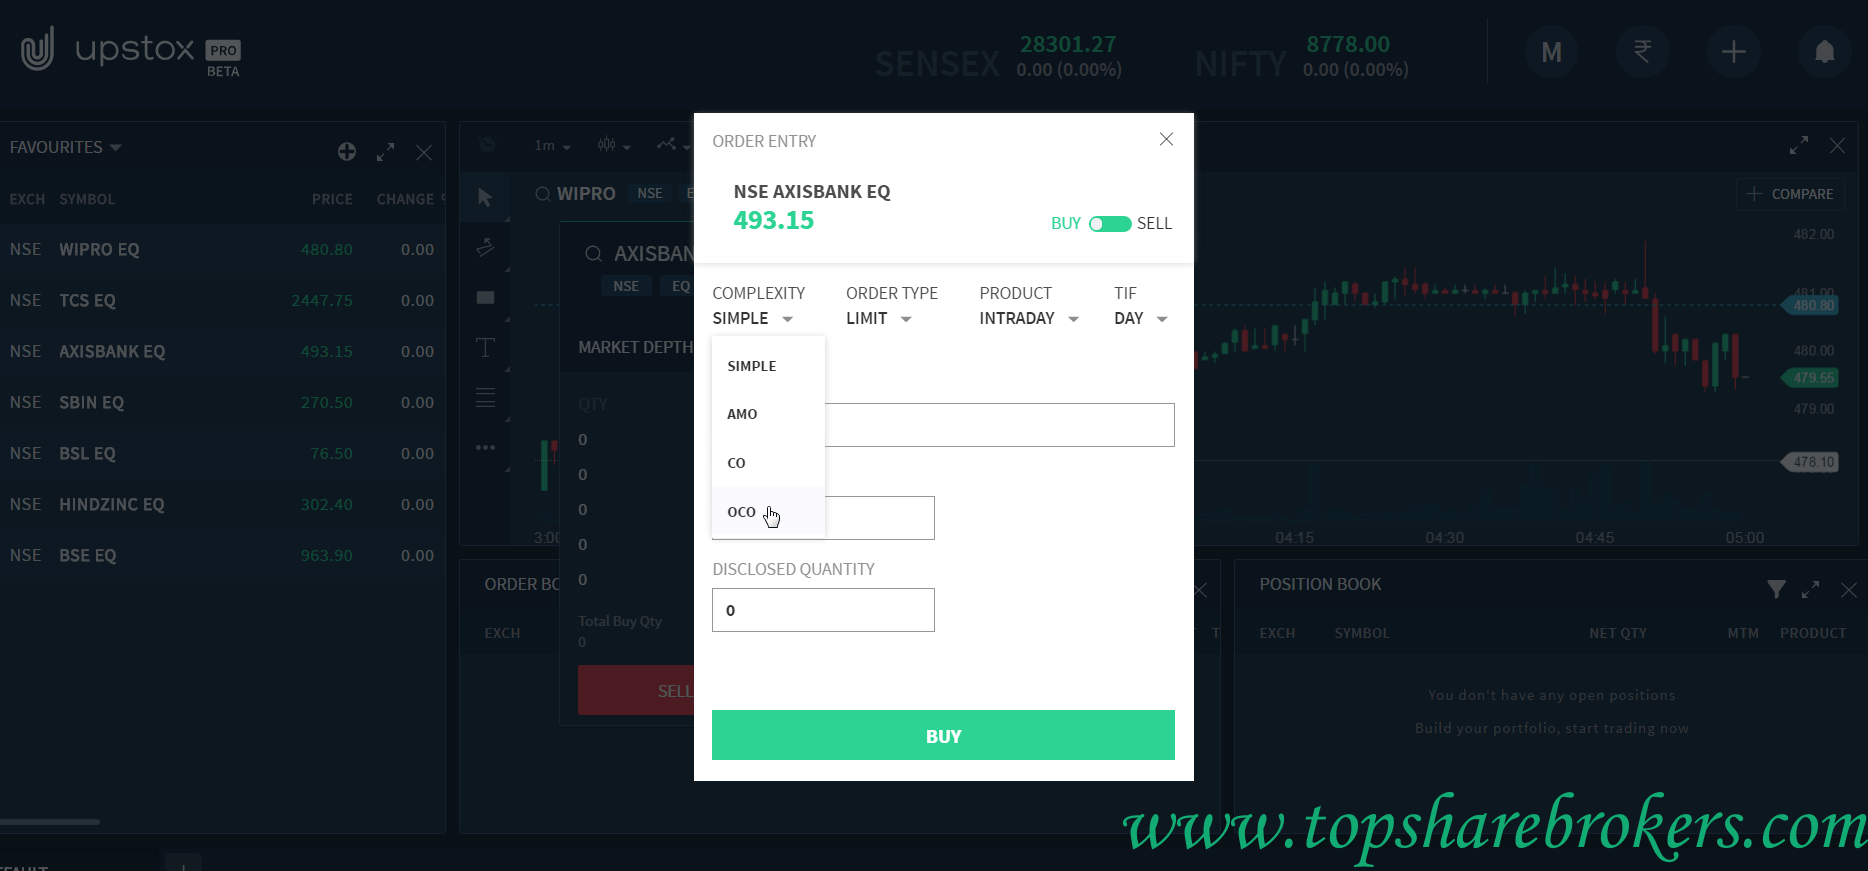 upstox-pro-rksv-webtrading-order-entry-buy